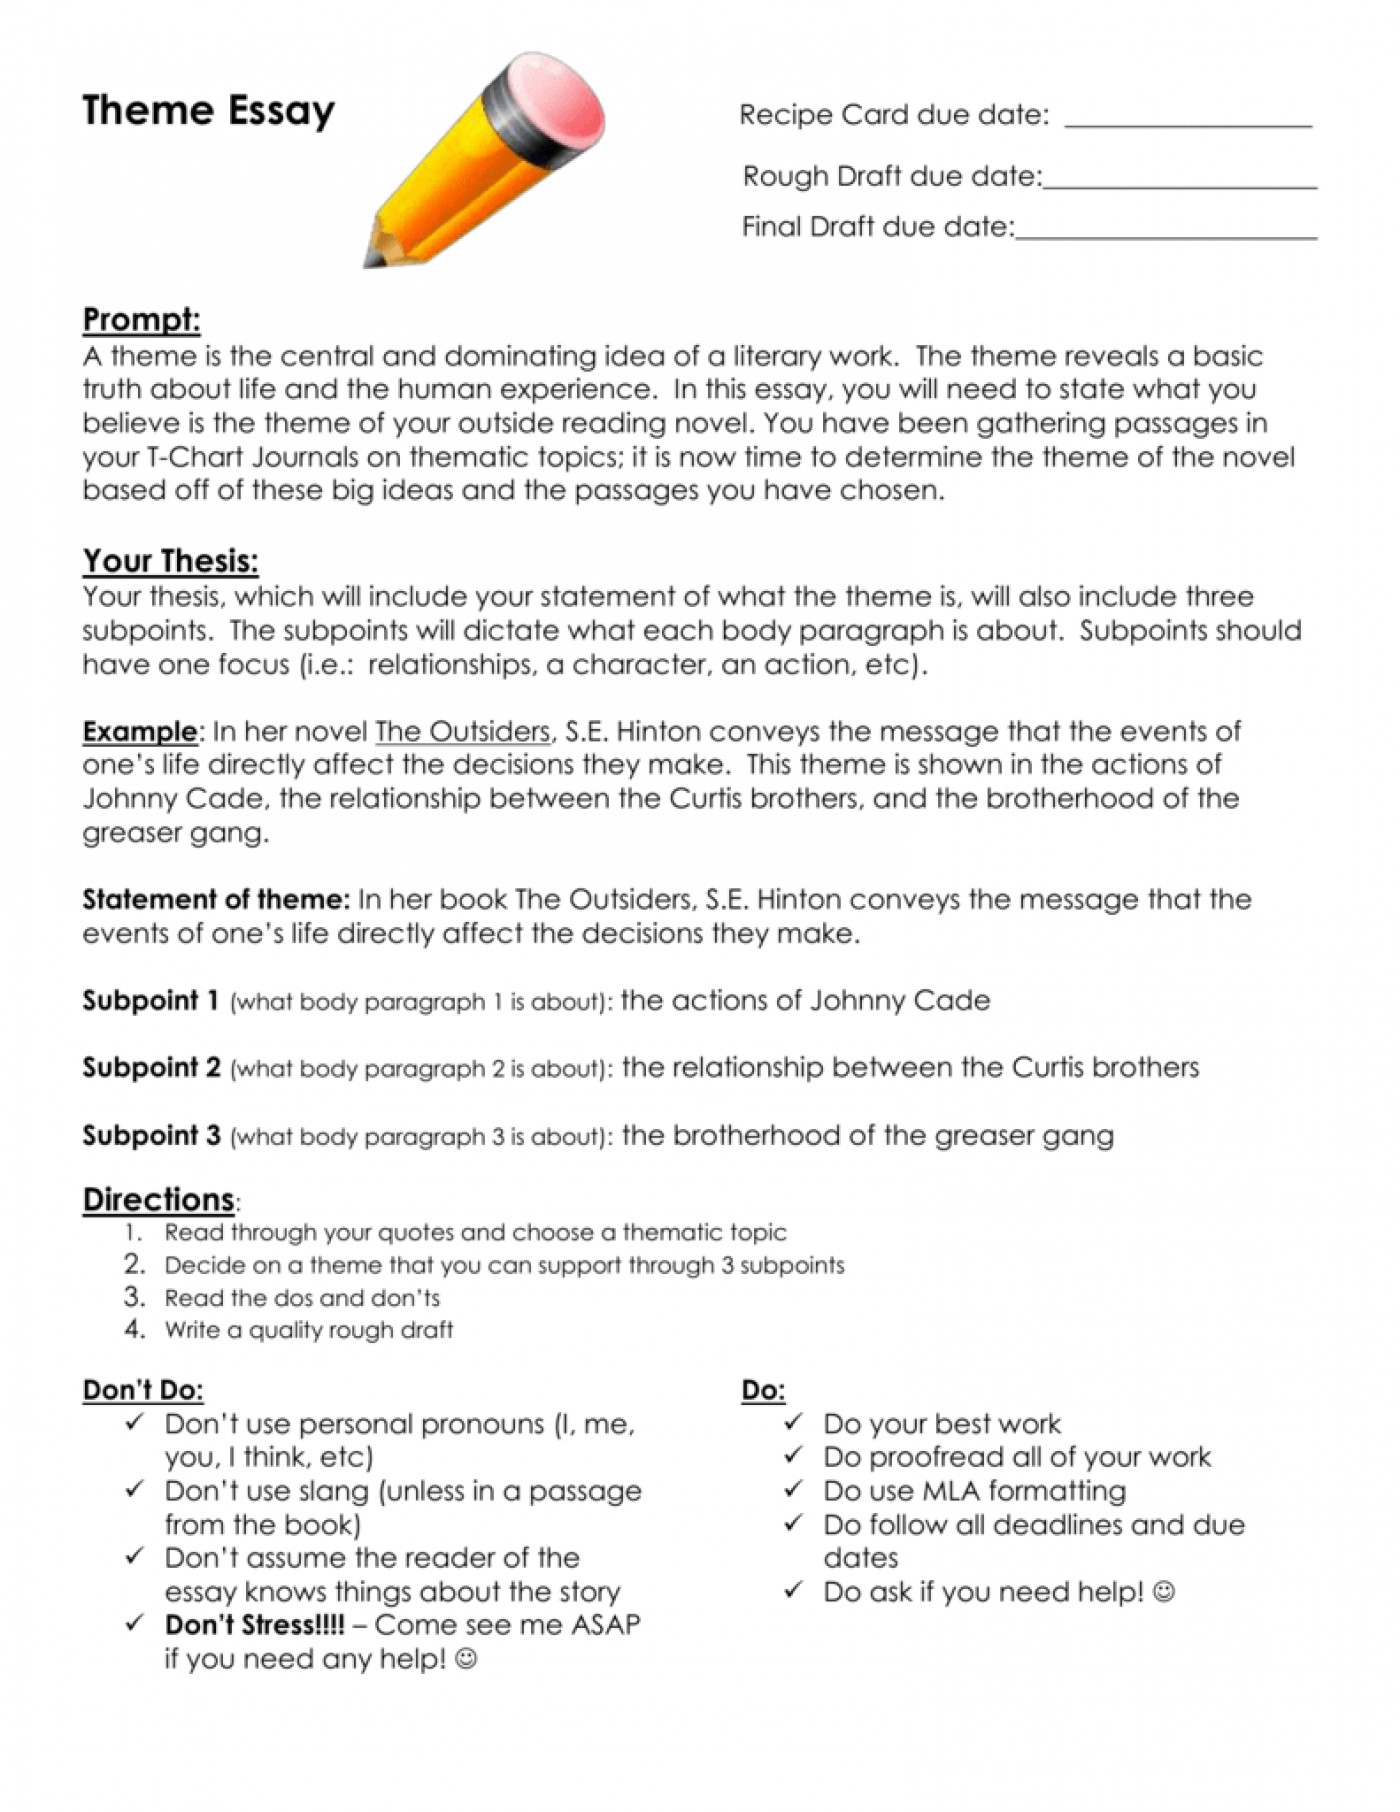 017 Research Paper Conclusion For Pdf The Outsiders Theme Essay Assignment Outline Questions Imposing A And Recommendation In Example How To Write Paragraph 1400